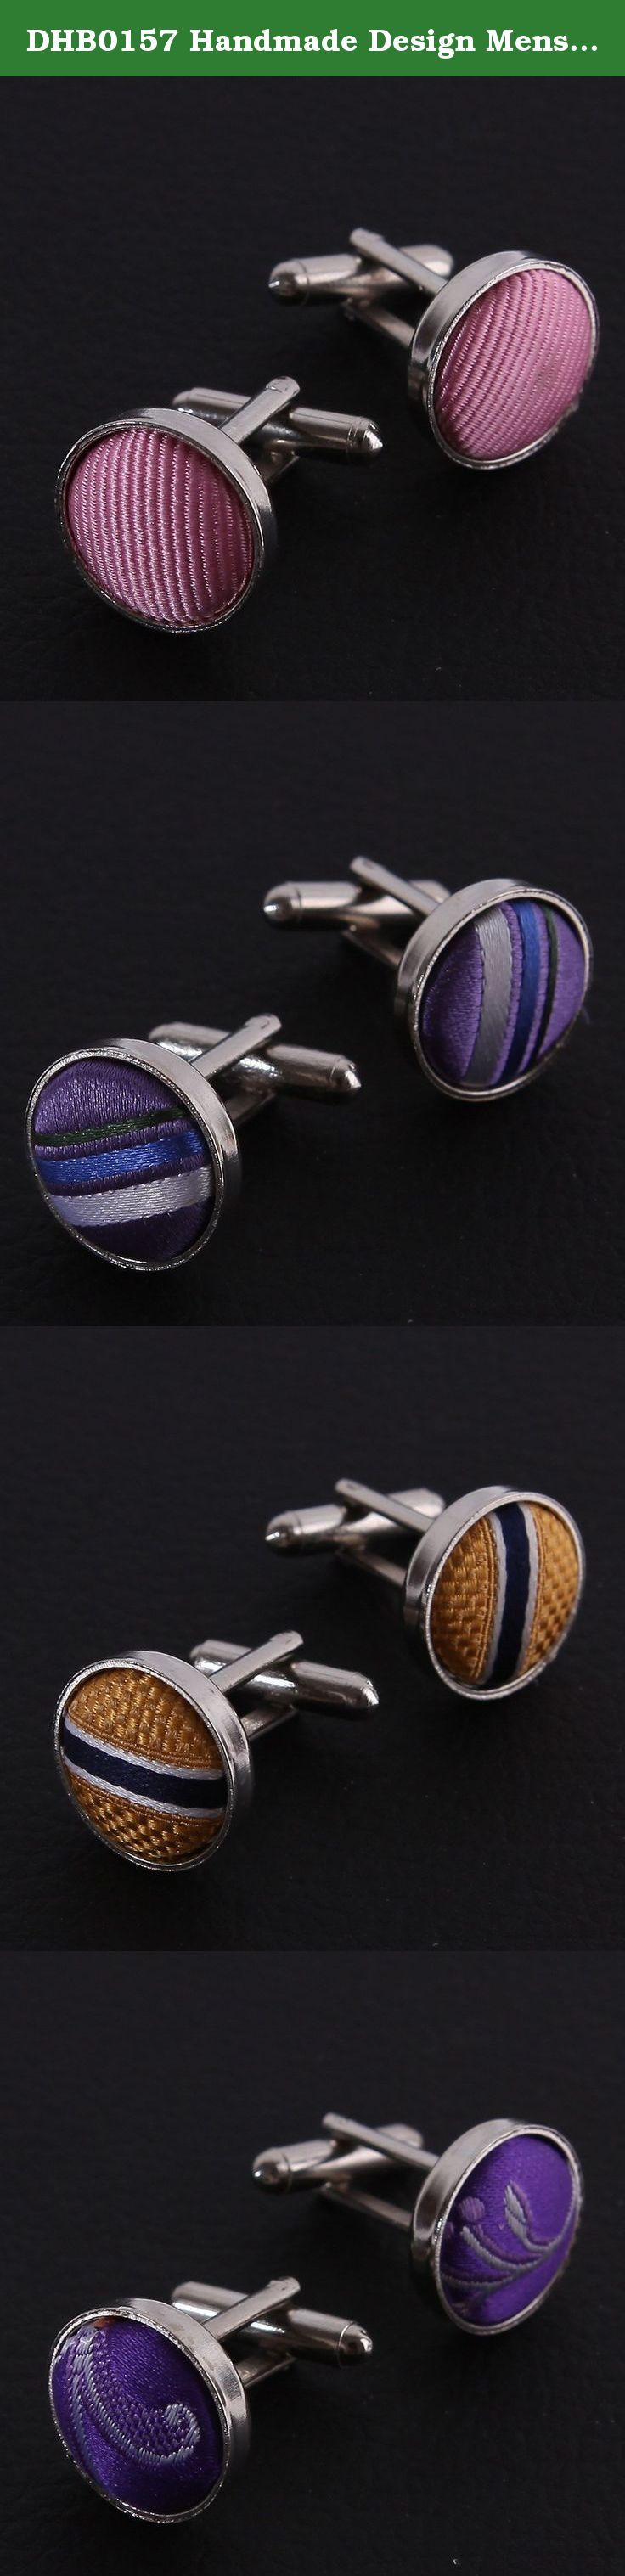 DHB0157 Handmade Design Mens Cufflinks Multi-coloured Jewelry for Men 4 Pairs of Silk Cufflinks Package Set By Dan Smith. Headquartered in Sydney, Australia, FashionOn is a multichannel online retailer and wholesaler with huge range that has a strong focus on fashionable men's and women's accessories, including ties, bow ties, cufflinks, vest sets, hankies, suspenders, cummerbunds, money clips, necklaces and bracelets. FashionOn has a philosophy of continuous service improvement, which is...